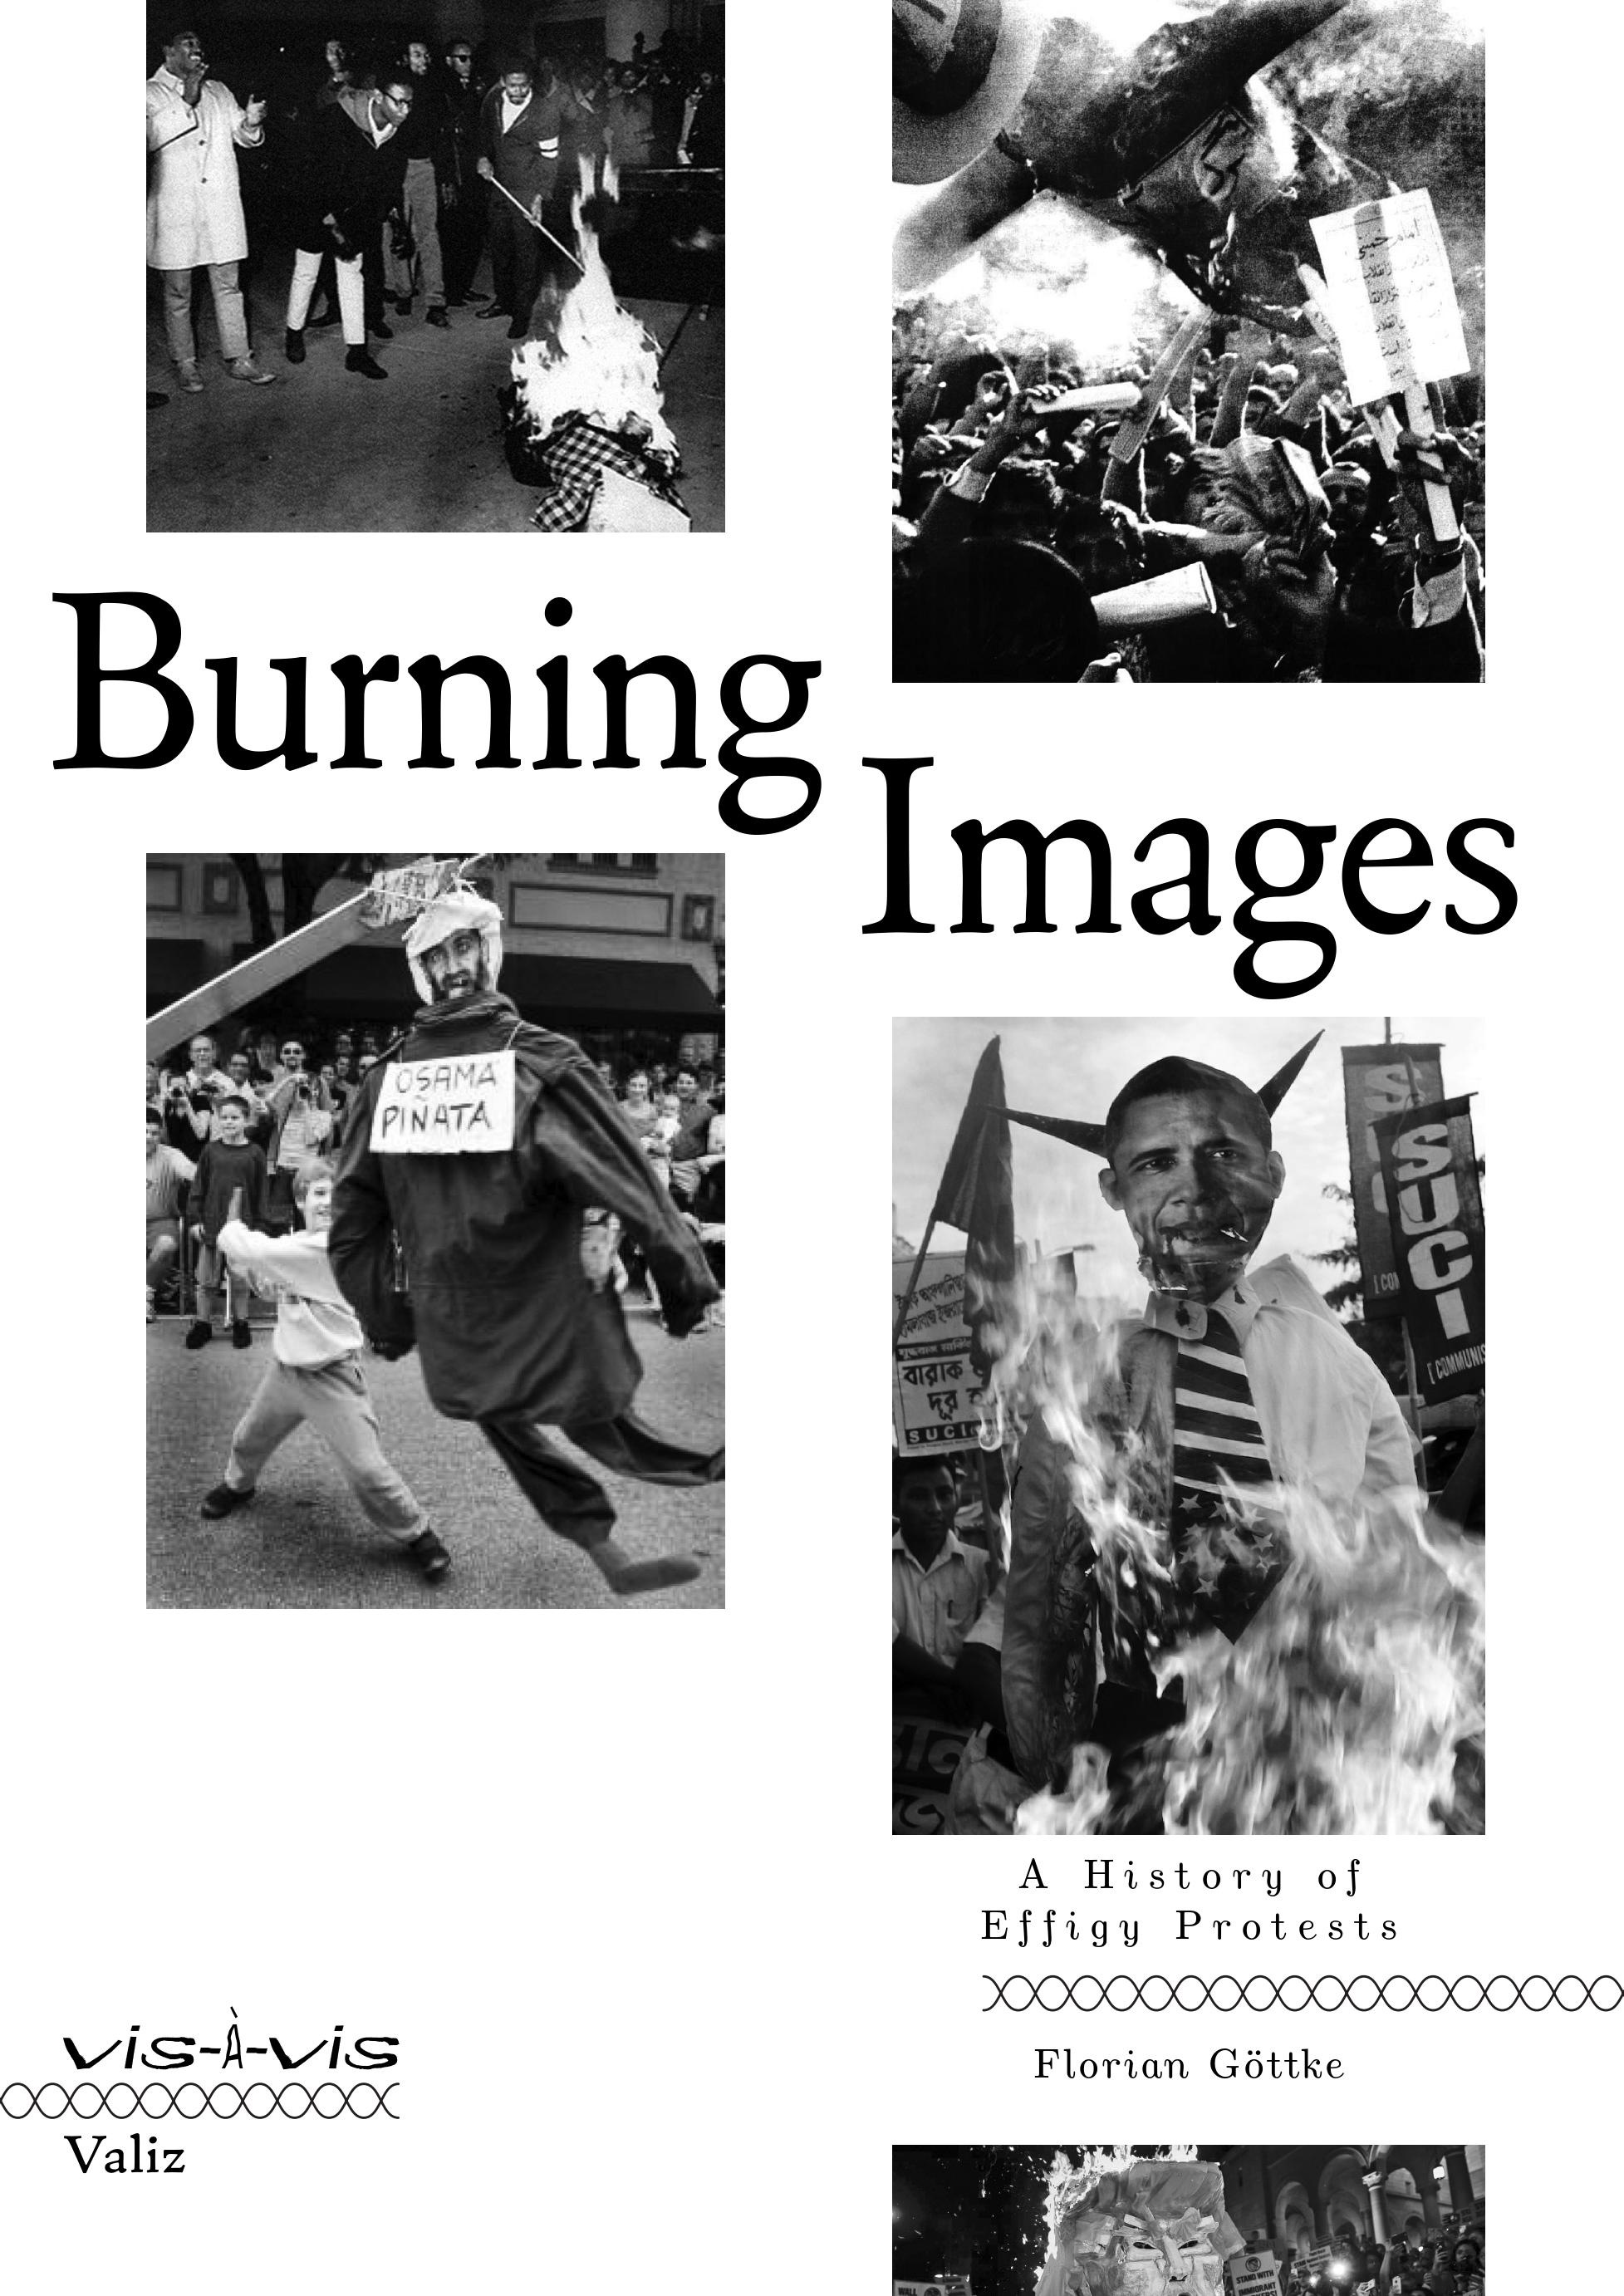 Burning Images